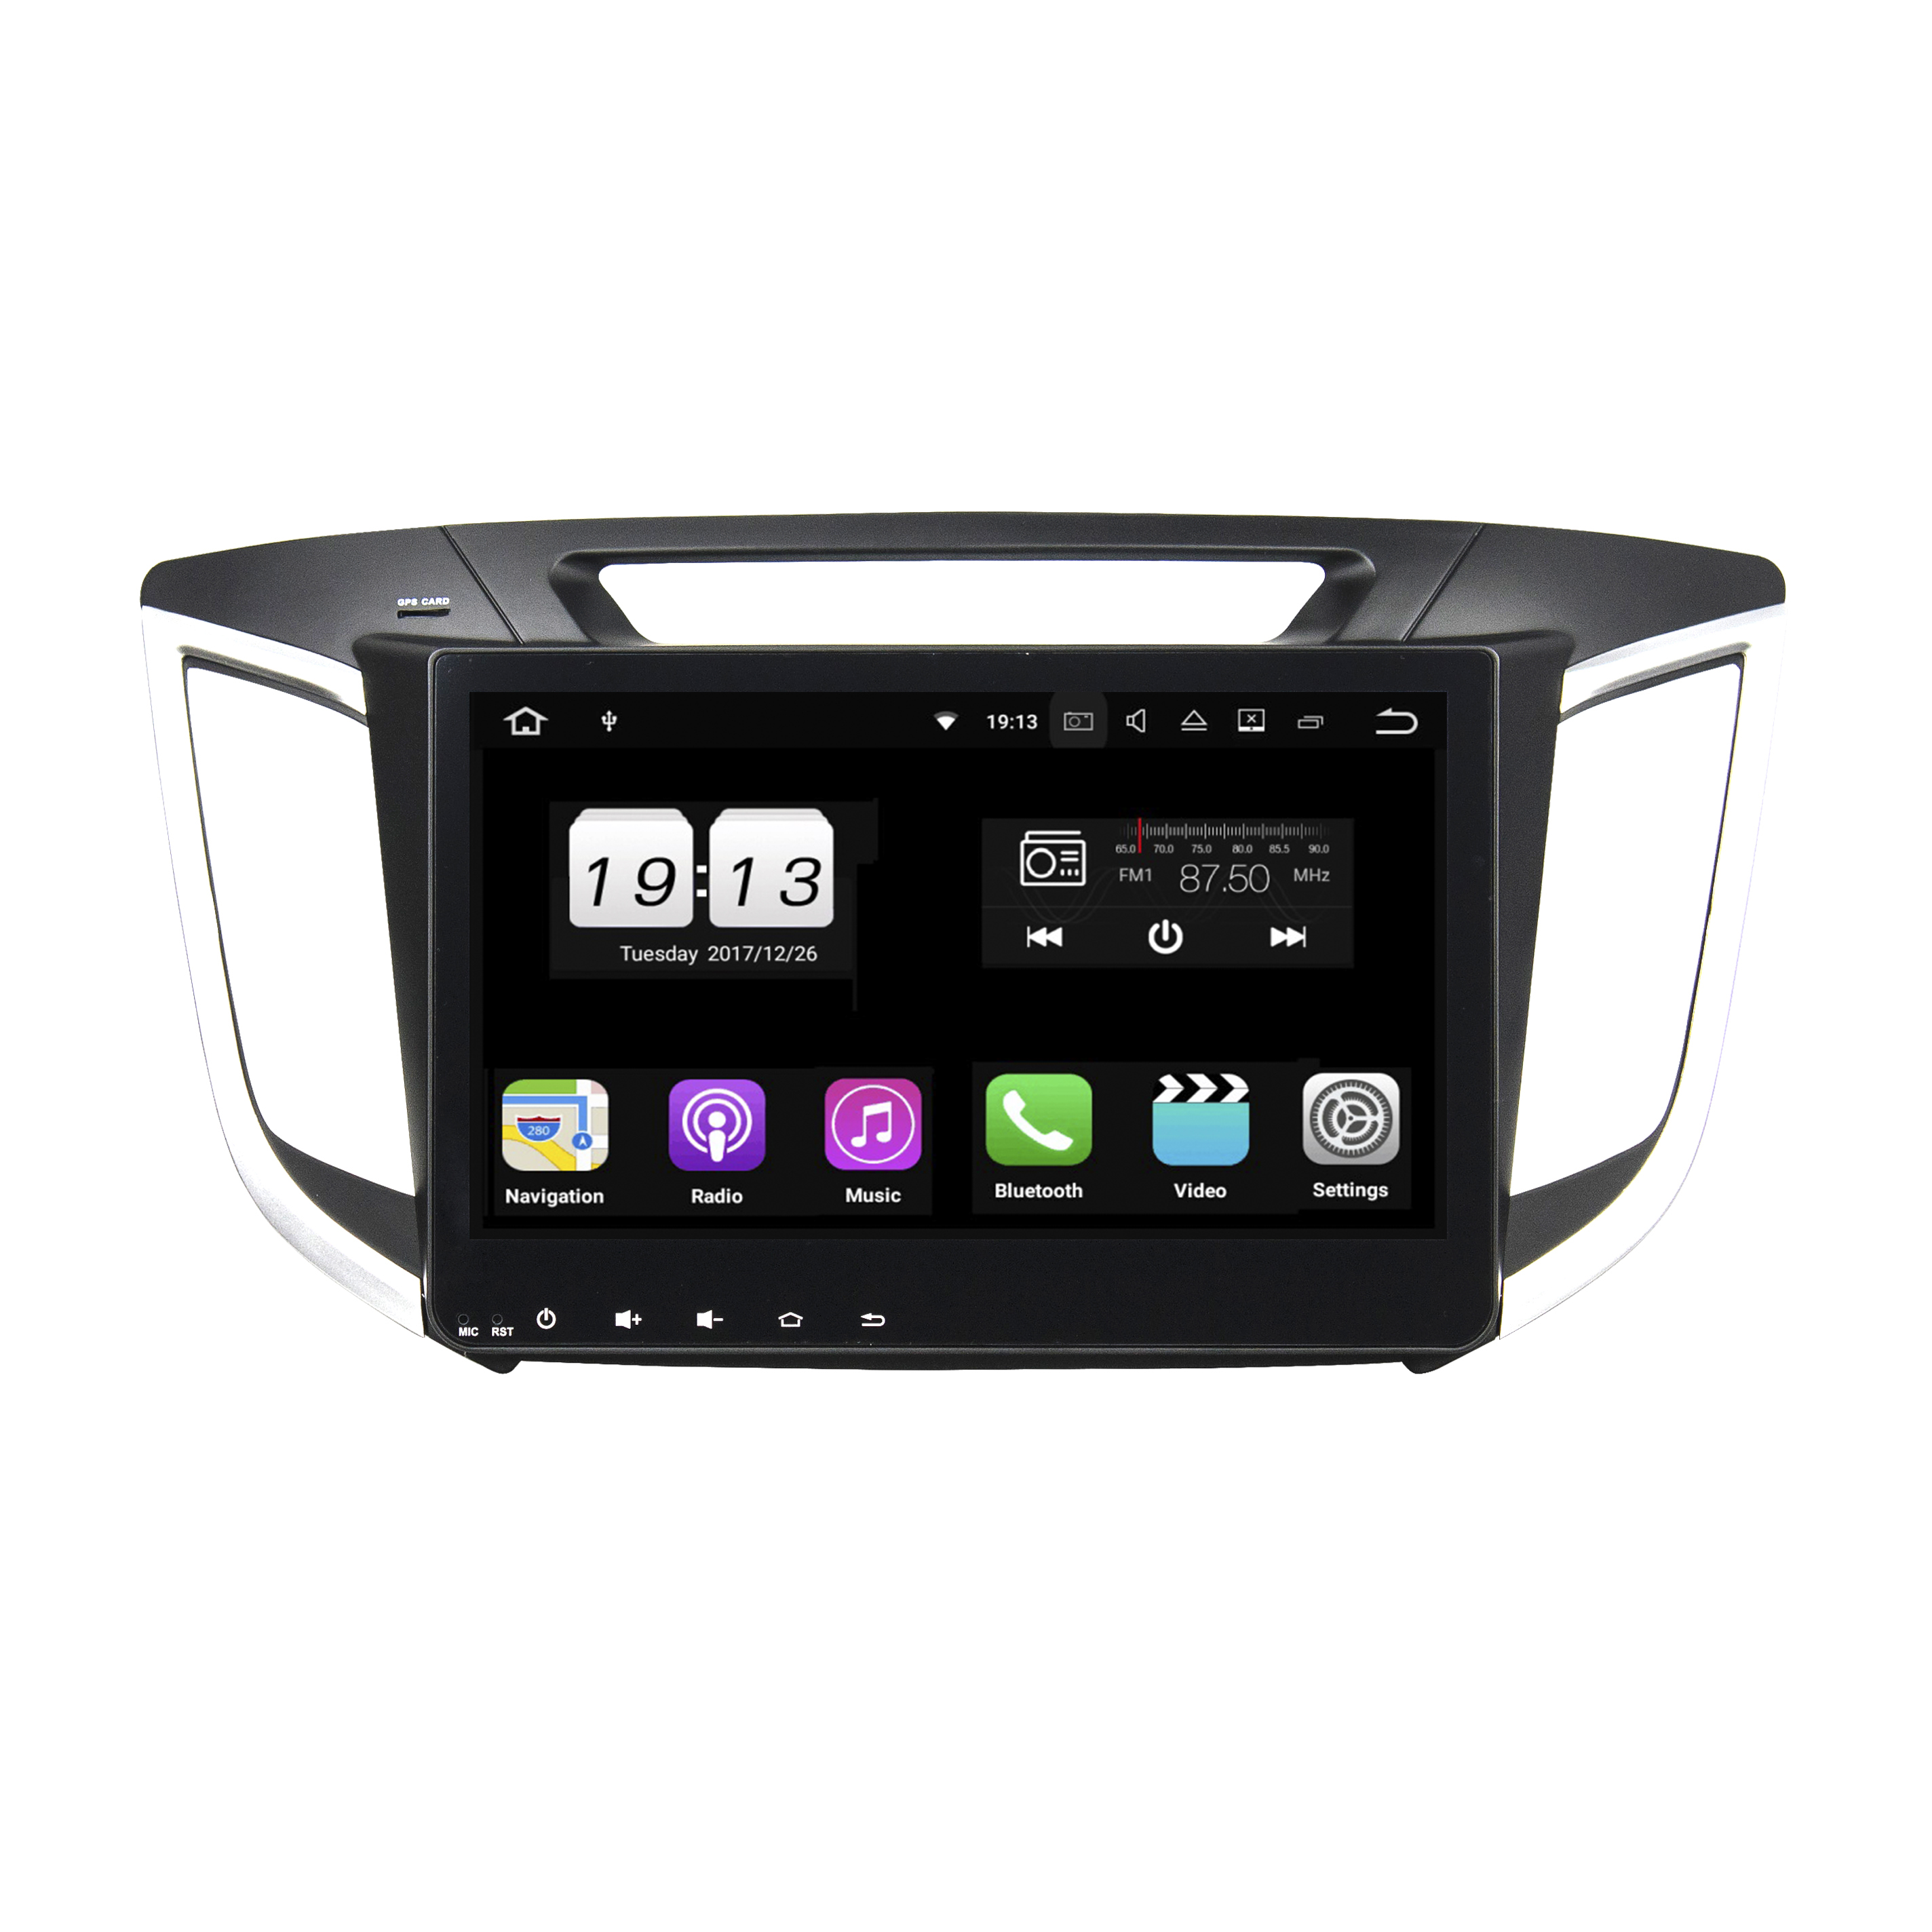 "10.1 ""Android 8.1 car DVD player car multimedia radio di navigazione GPS per HYUNDAI IX25 2014-2015 senza un disco"